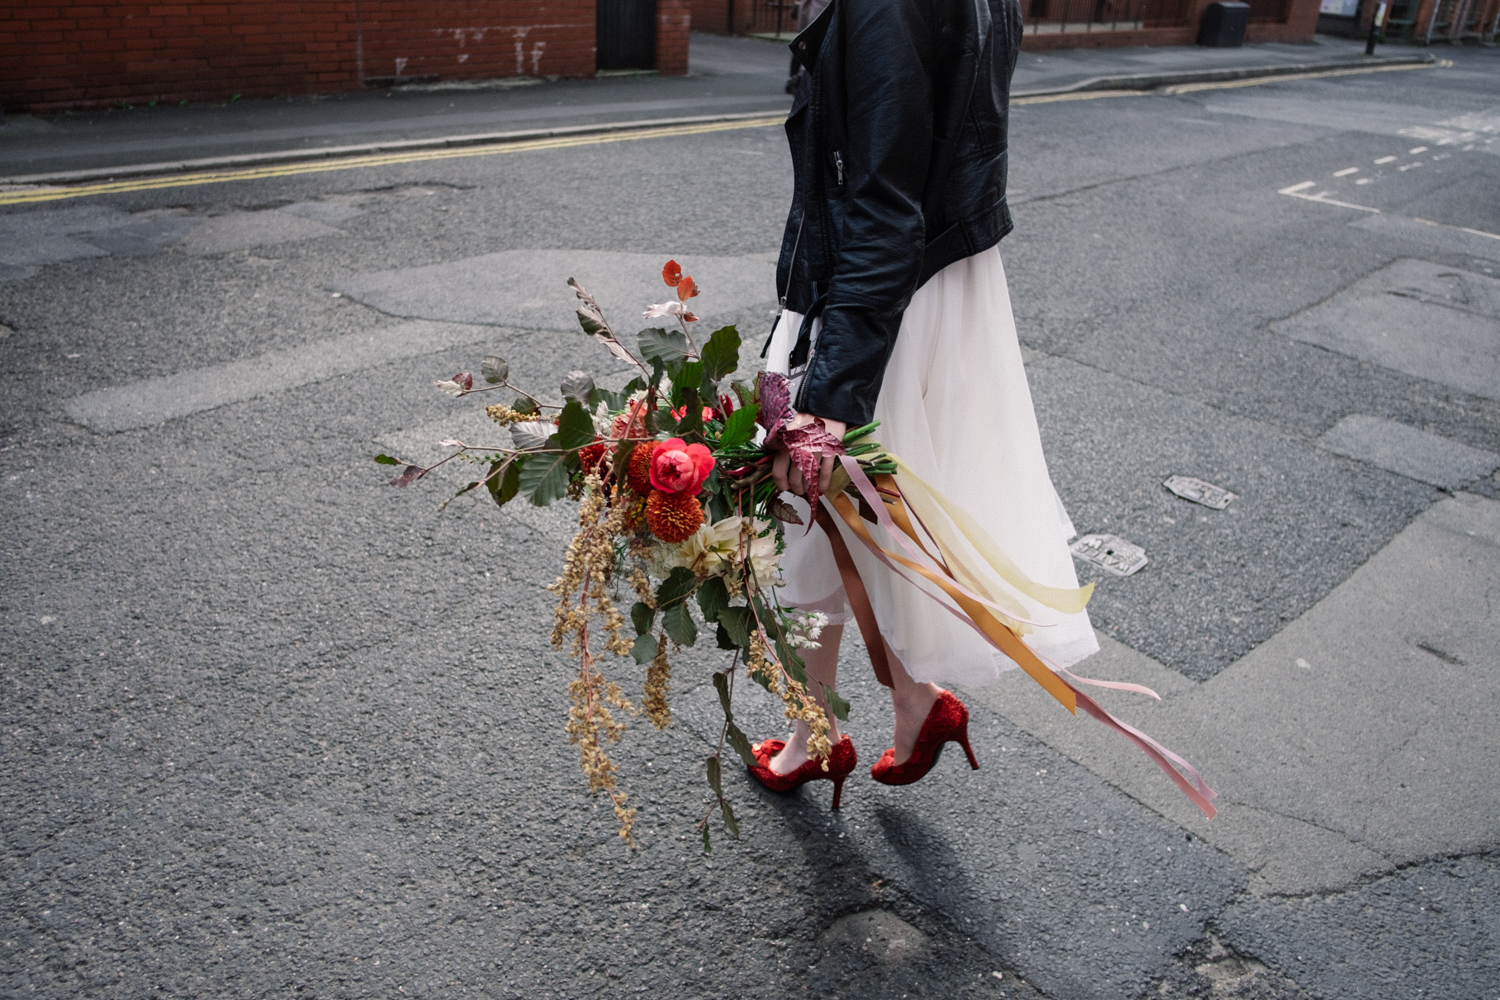 The sunlight shines on Martha as she carries her wedding bouquet by Florist Fletcher and Foley. Martha wears red shoes